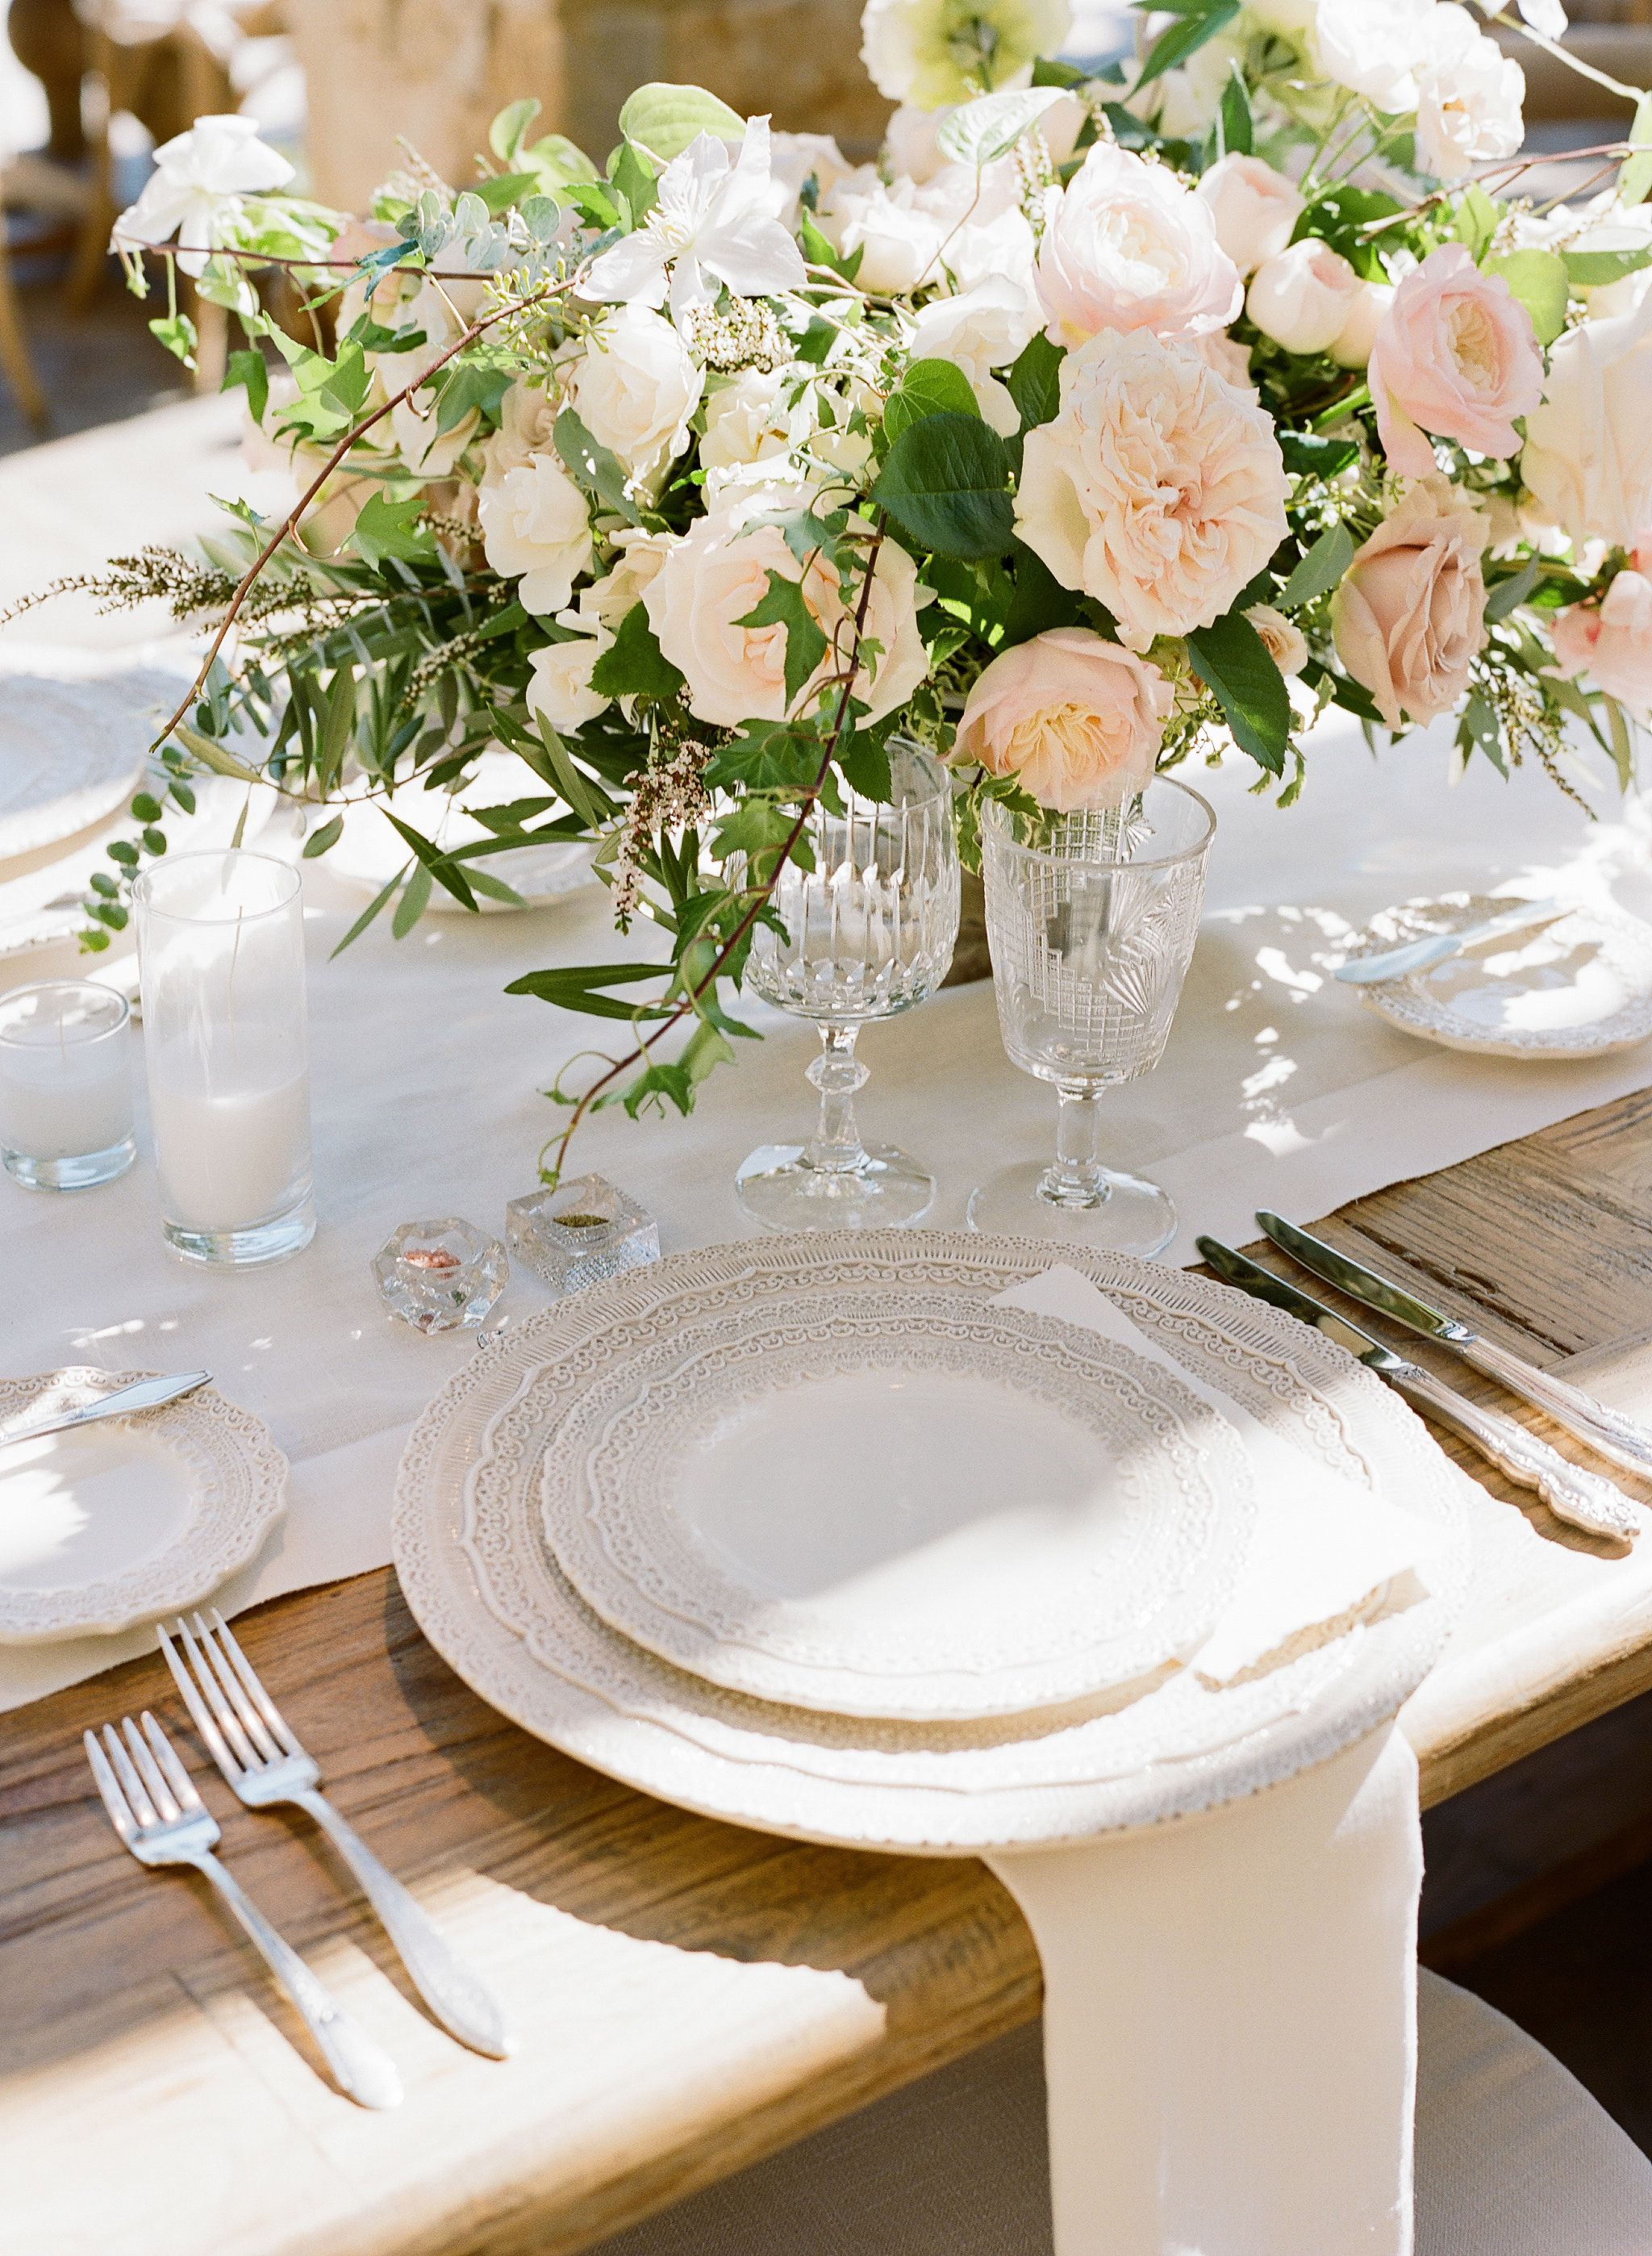 Tavola Park A Hilltop Wedding Inspired By The Couple S European Honeymoon In